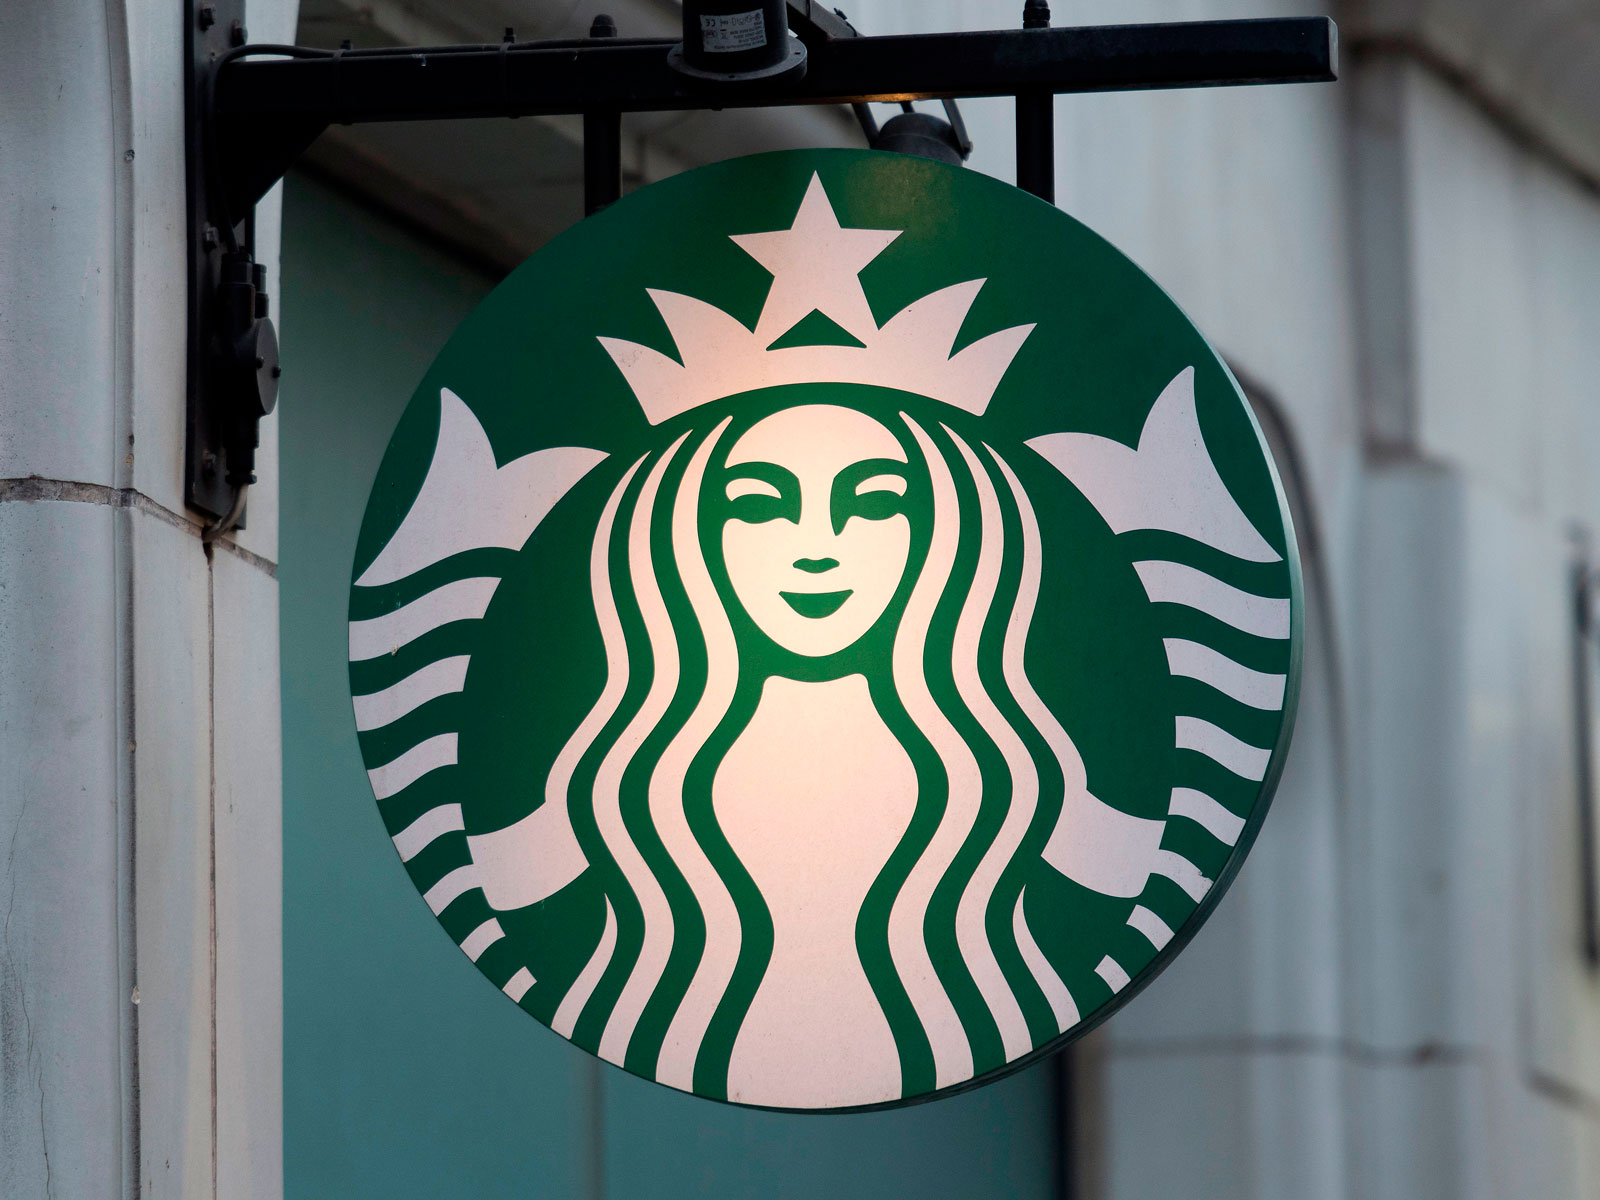 Starbucks Will Close 8,000 Stores to Conduct Racial-Bias Training